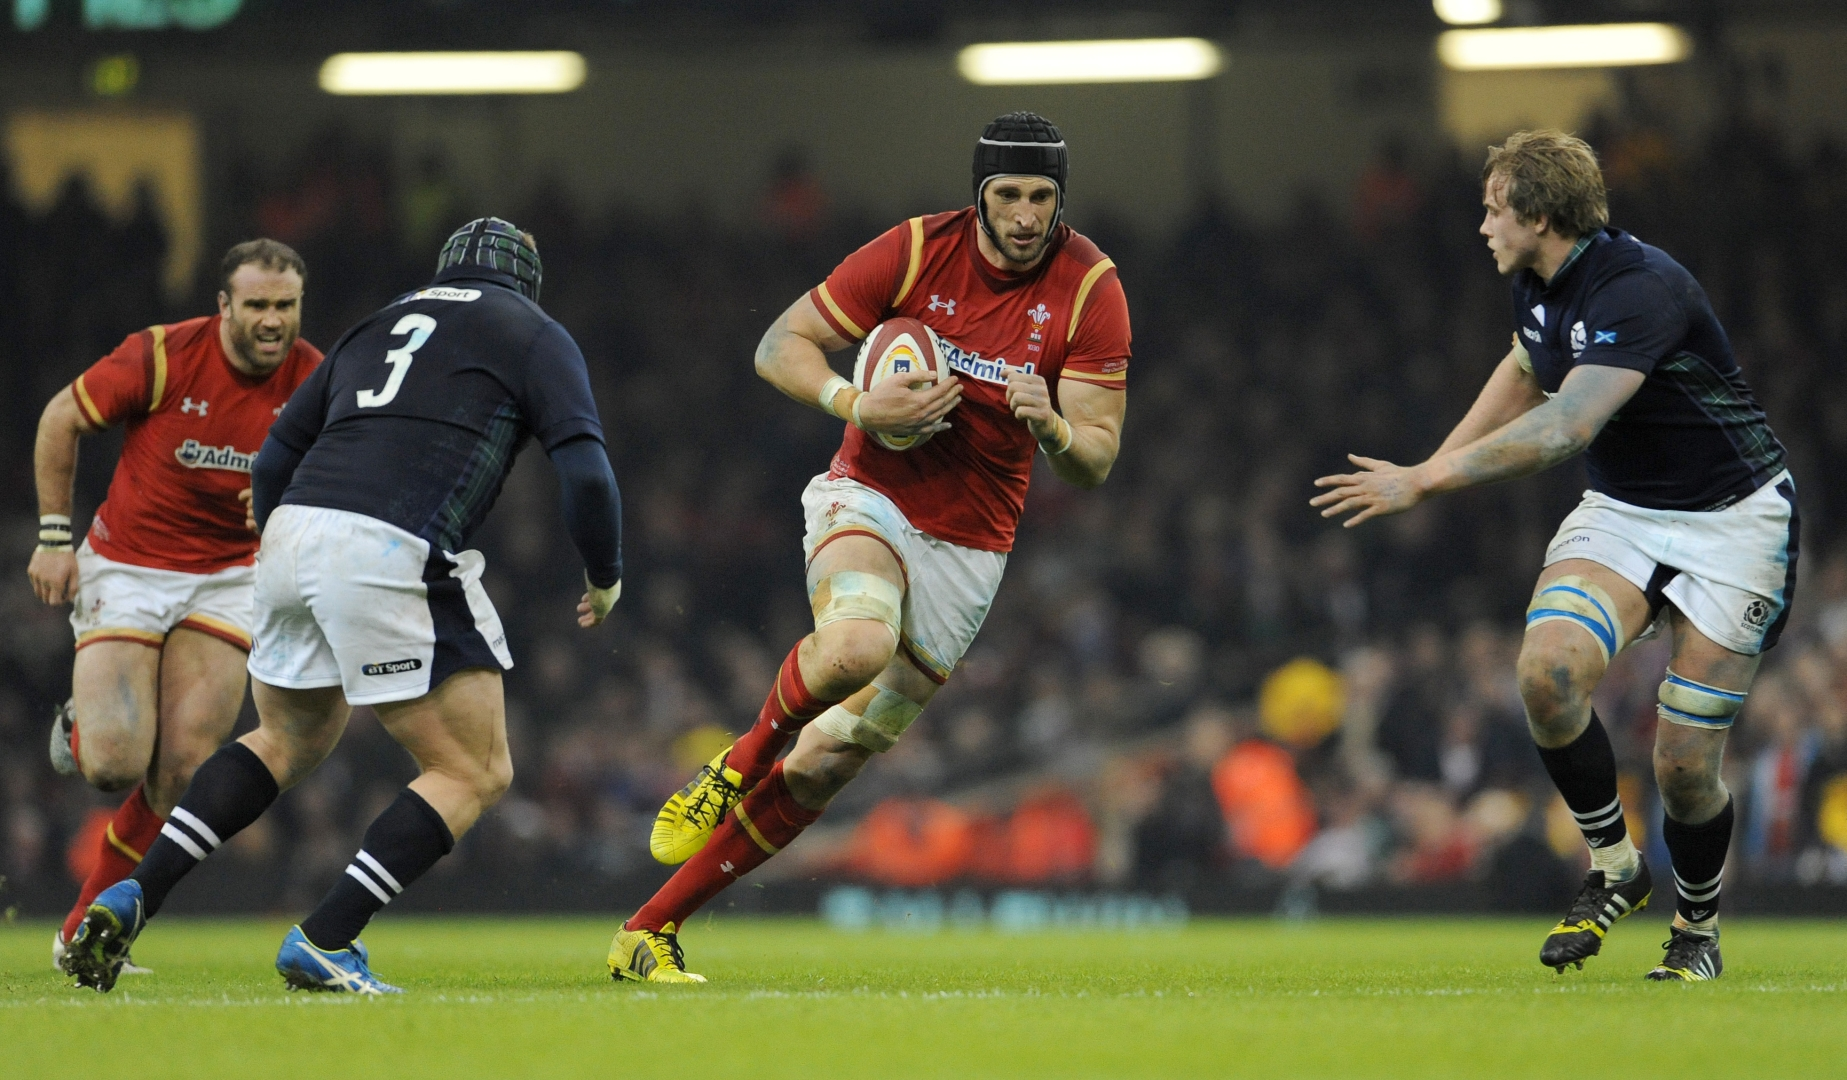 Gatland names Charteris skipper for Wales' tour match against Chiefs